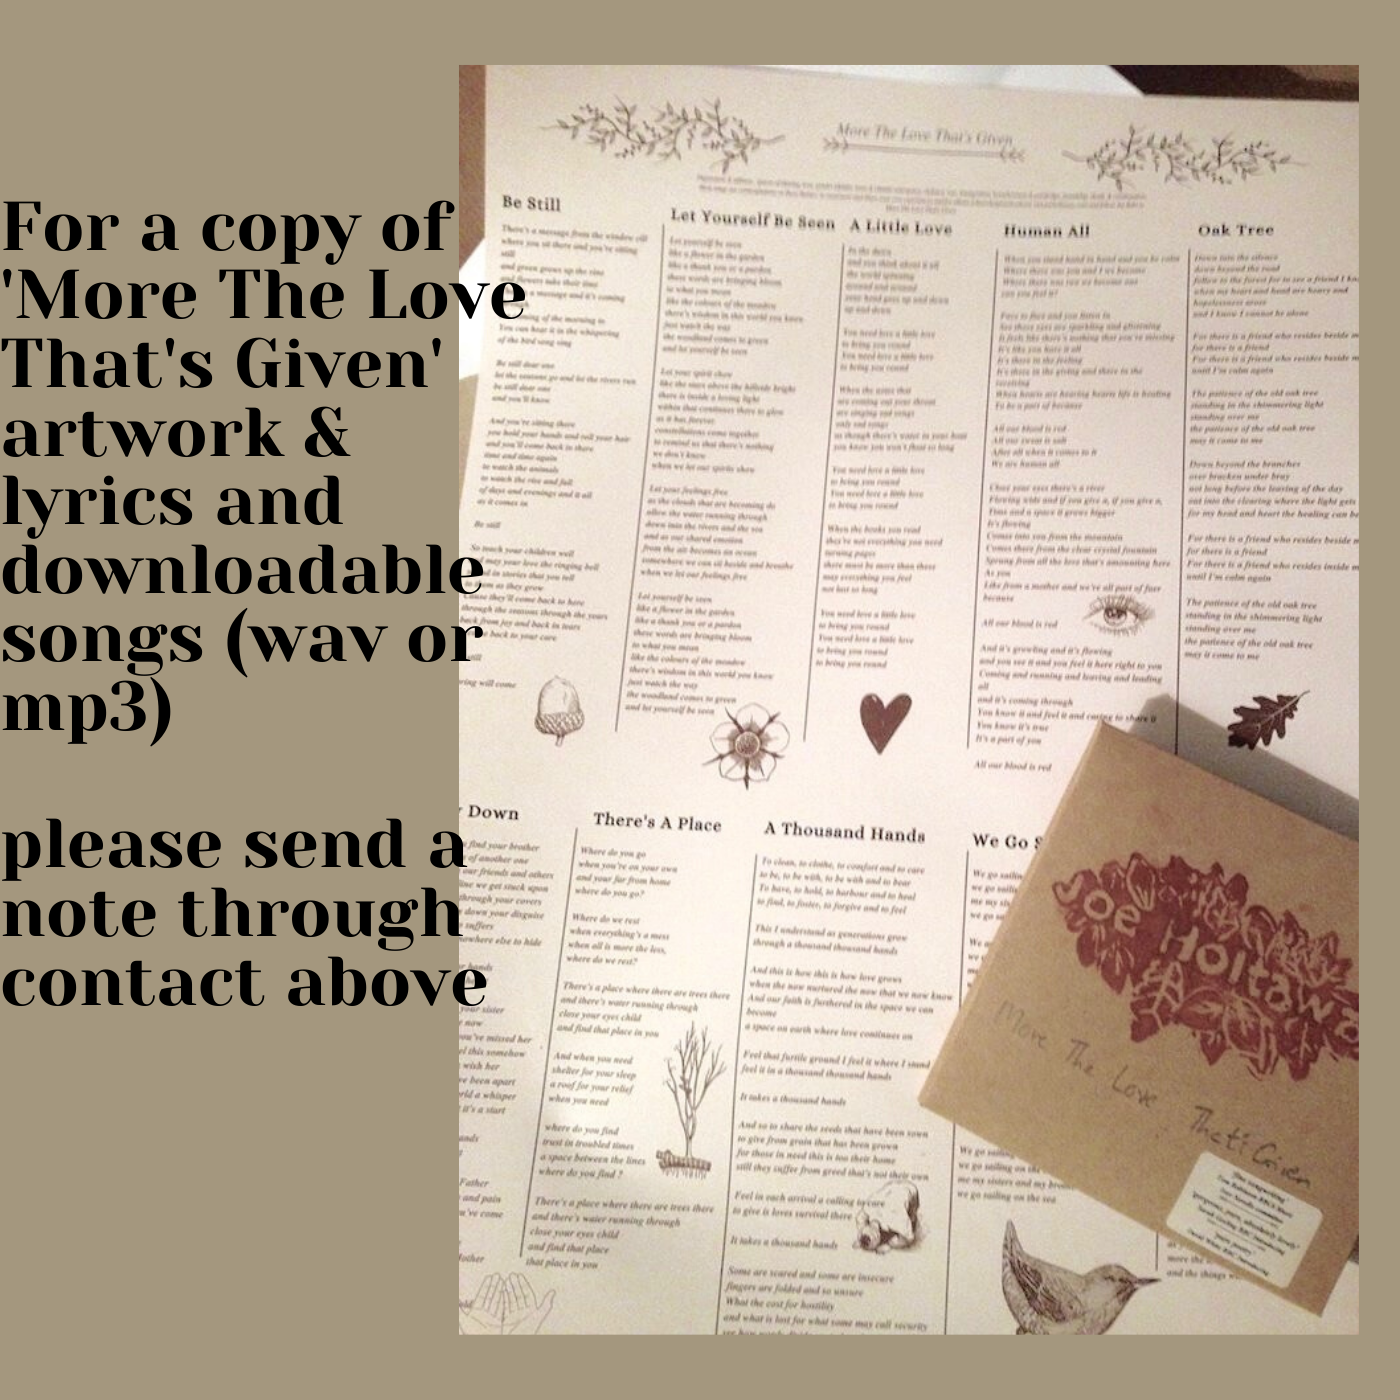 For a copy of More The Love That's Given artwork